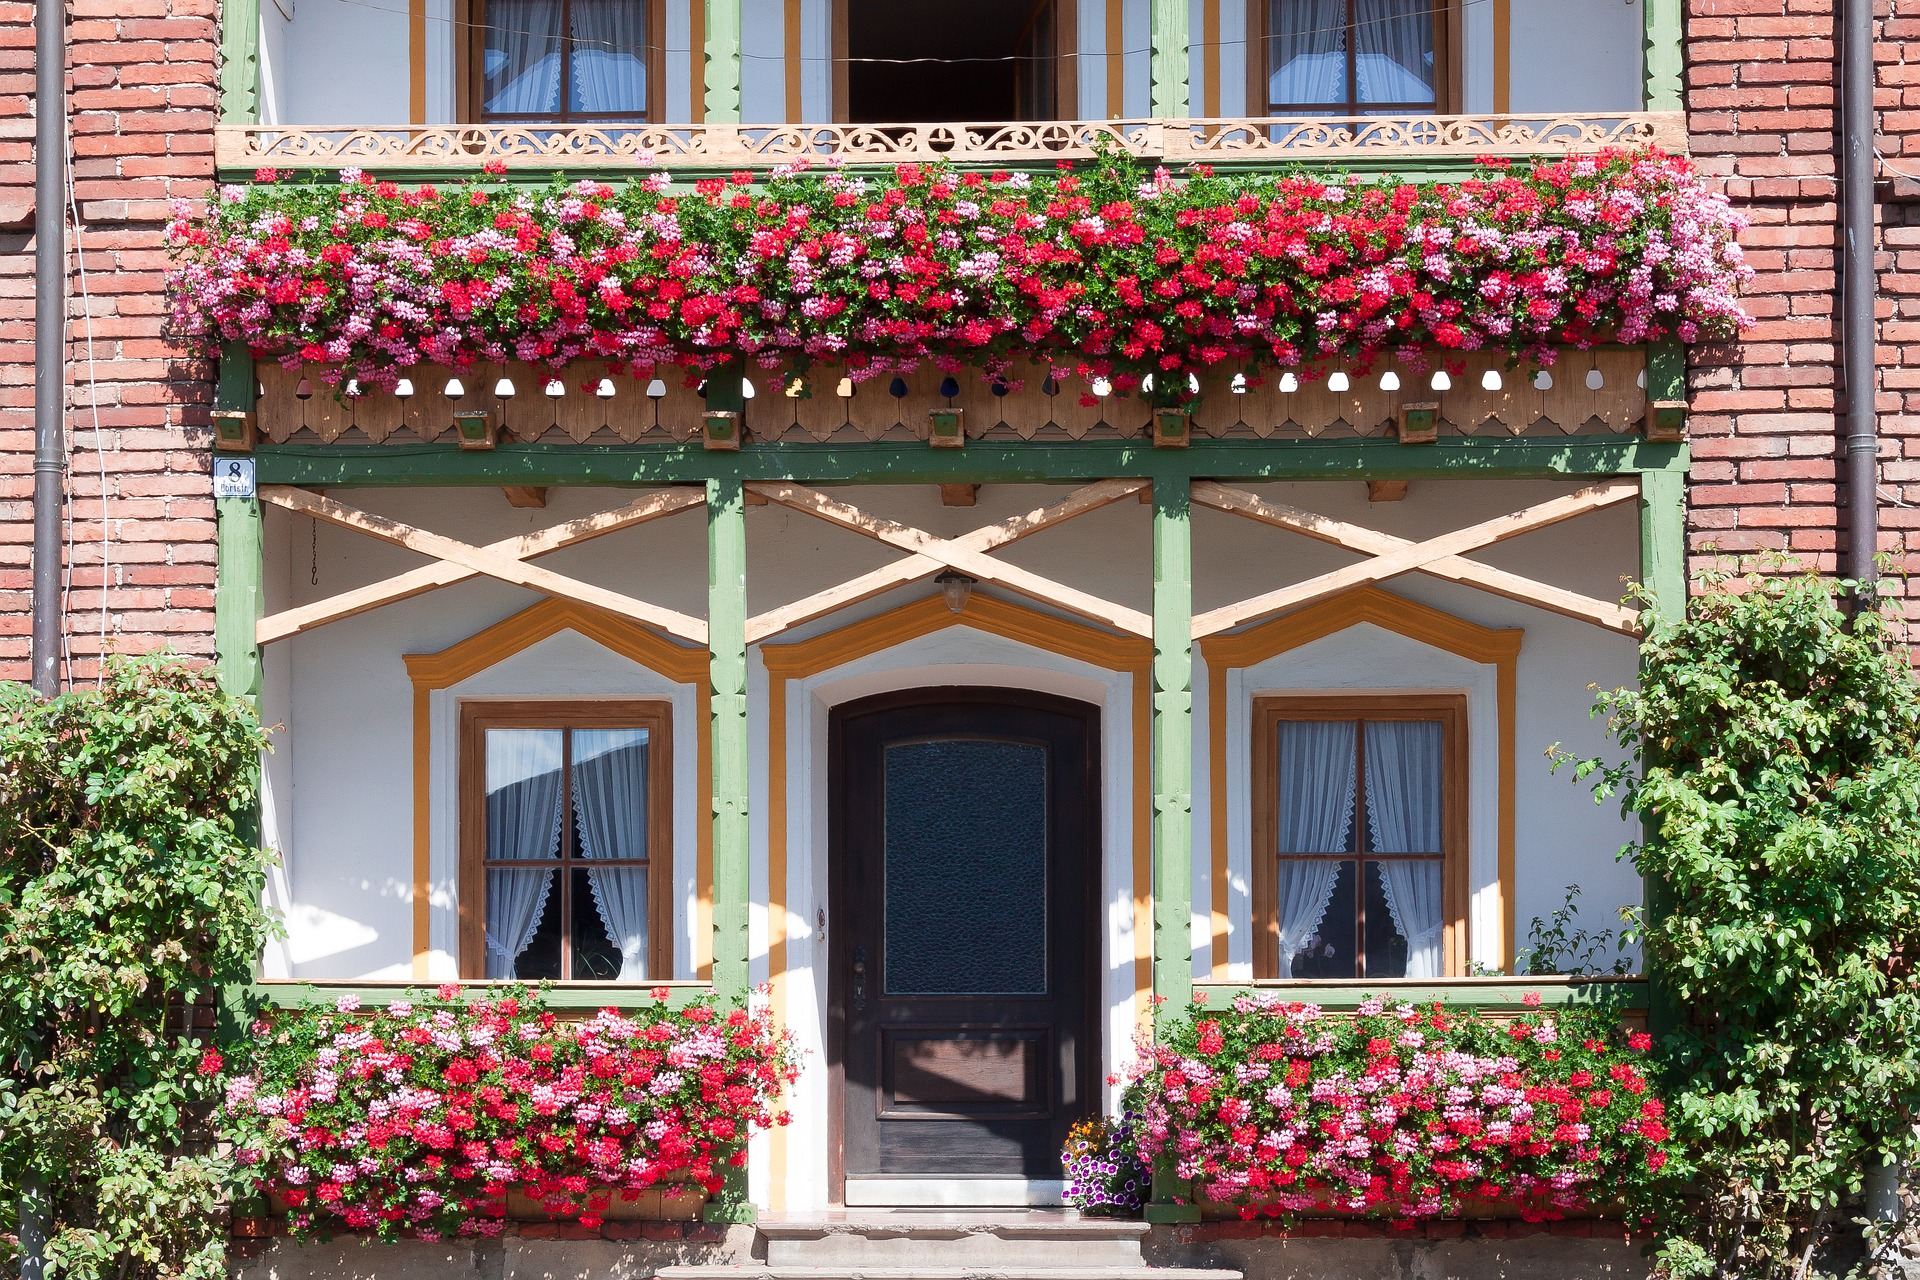 , BALCONY FLOWERS: PLANTING AND CARE TIPS, Best Garden, Home And DIY Tips